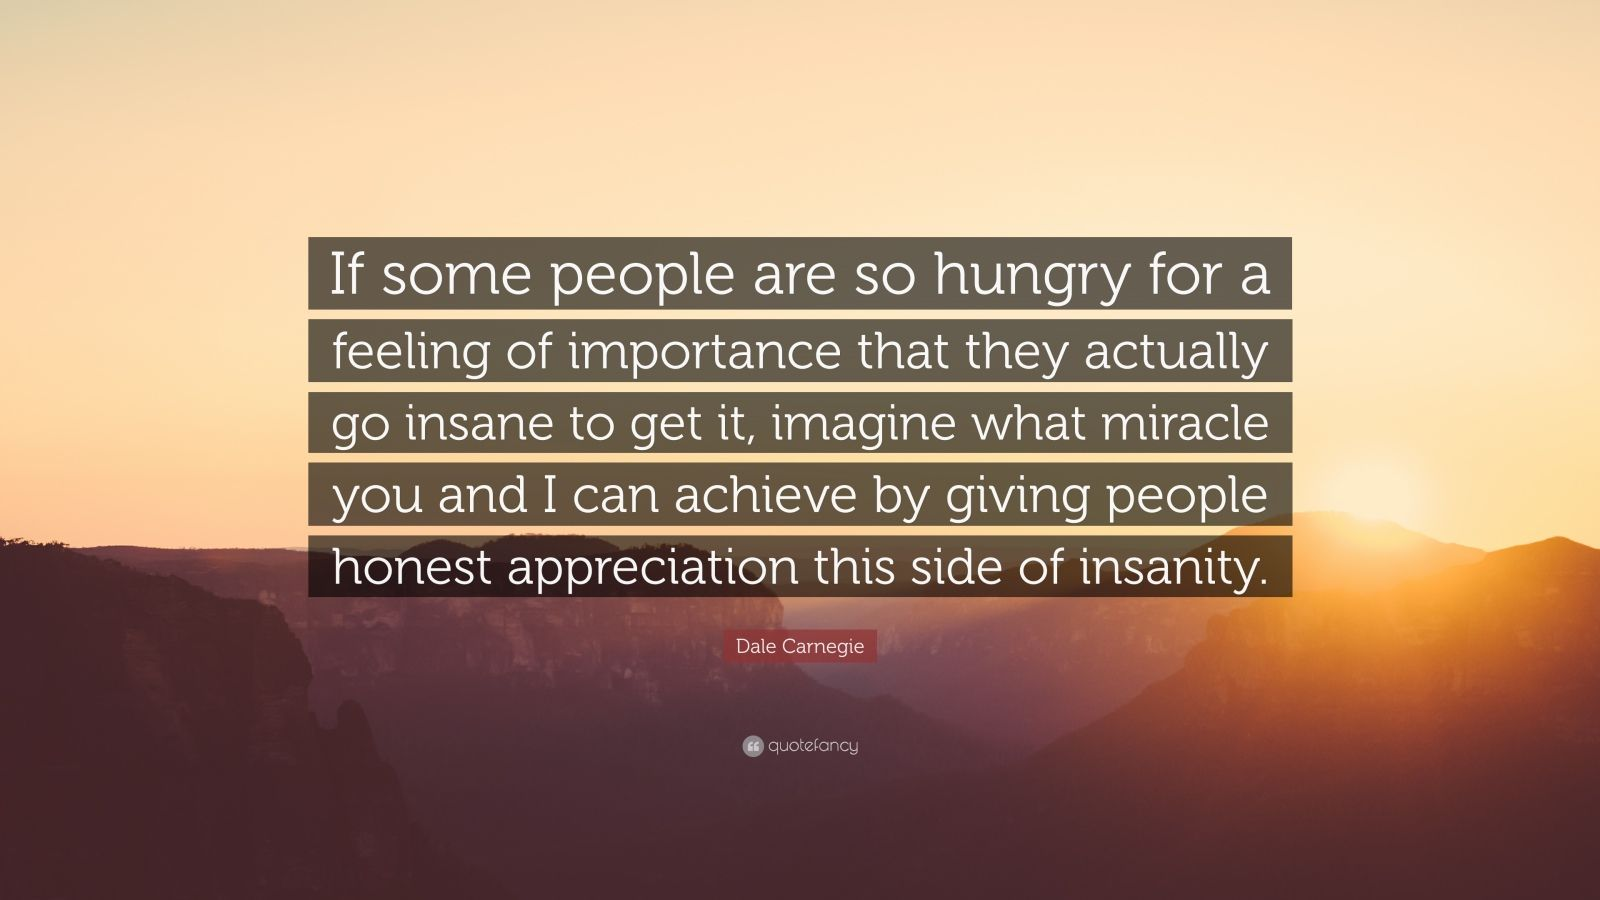 """Dale Carnegie Quote: """"If some people are so hungry for a feeling of importance that they actually go insane to get it, imagine what miracle you and I can achieve by giving people honest appreciation this side of insanity."""""""